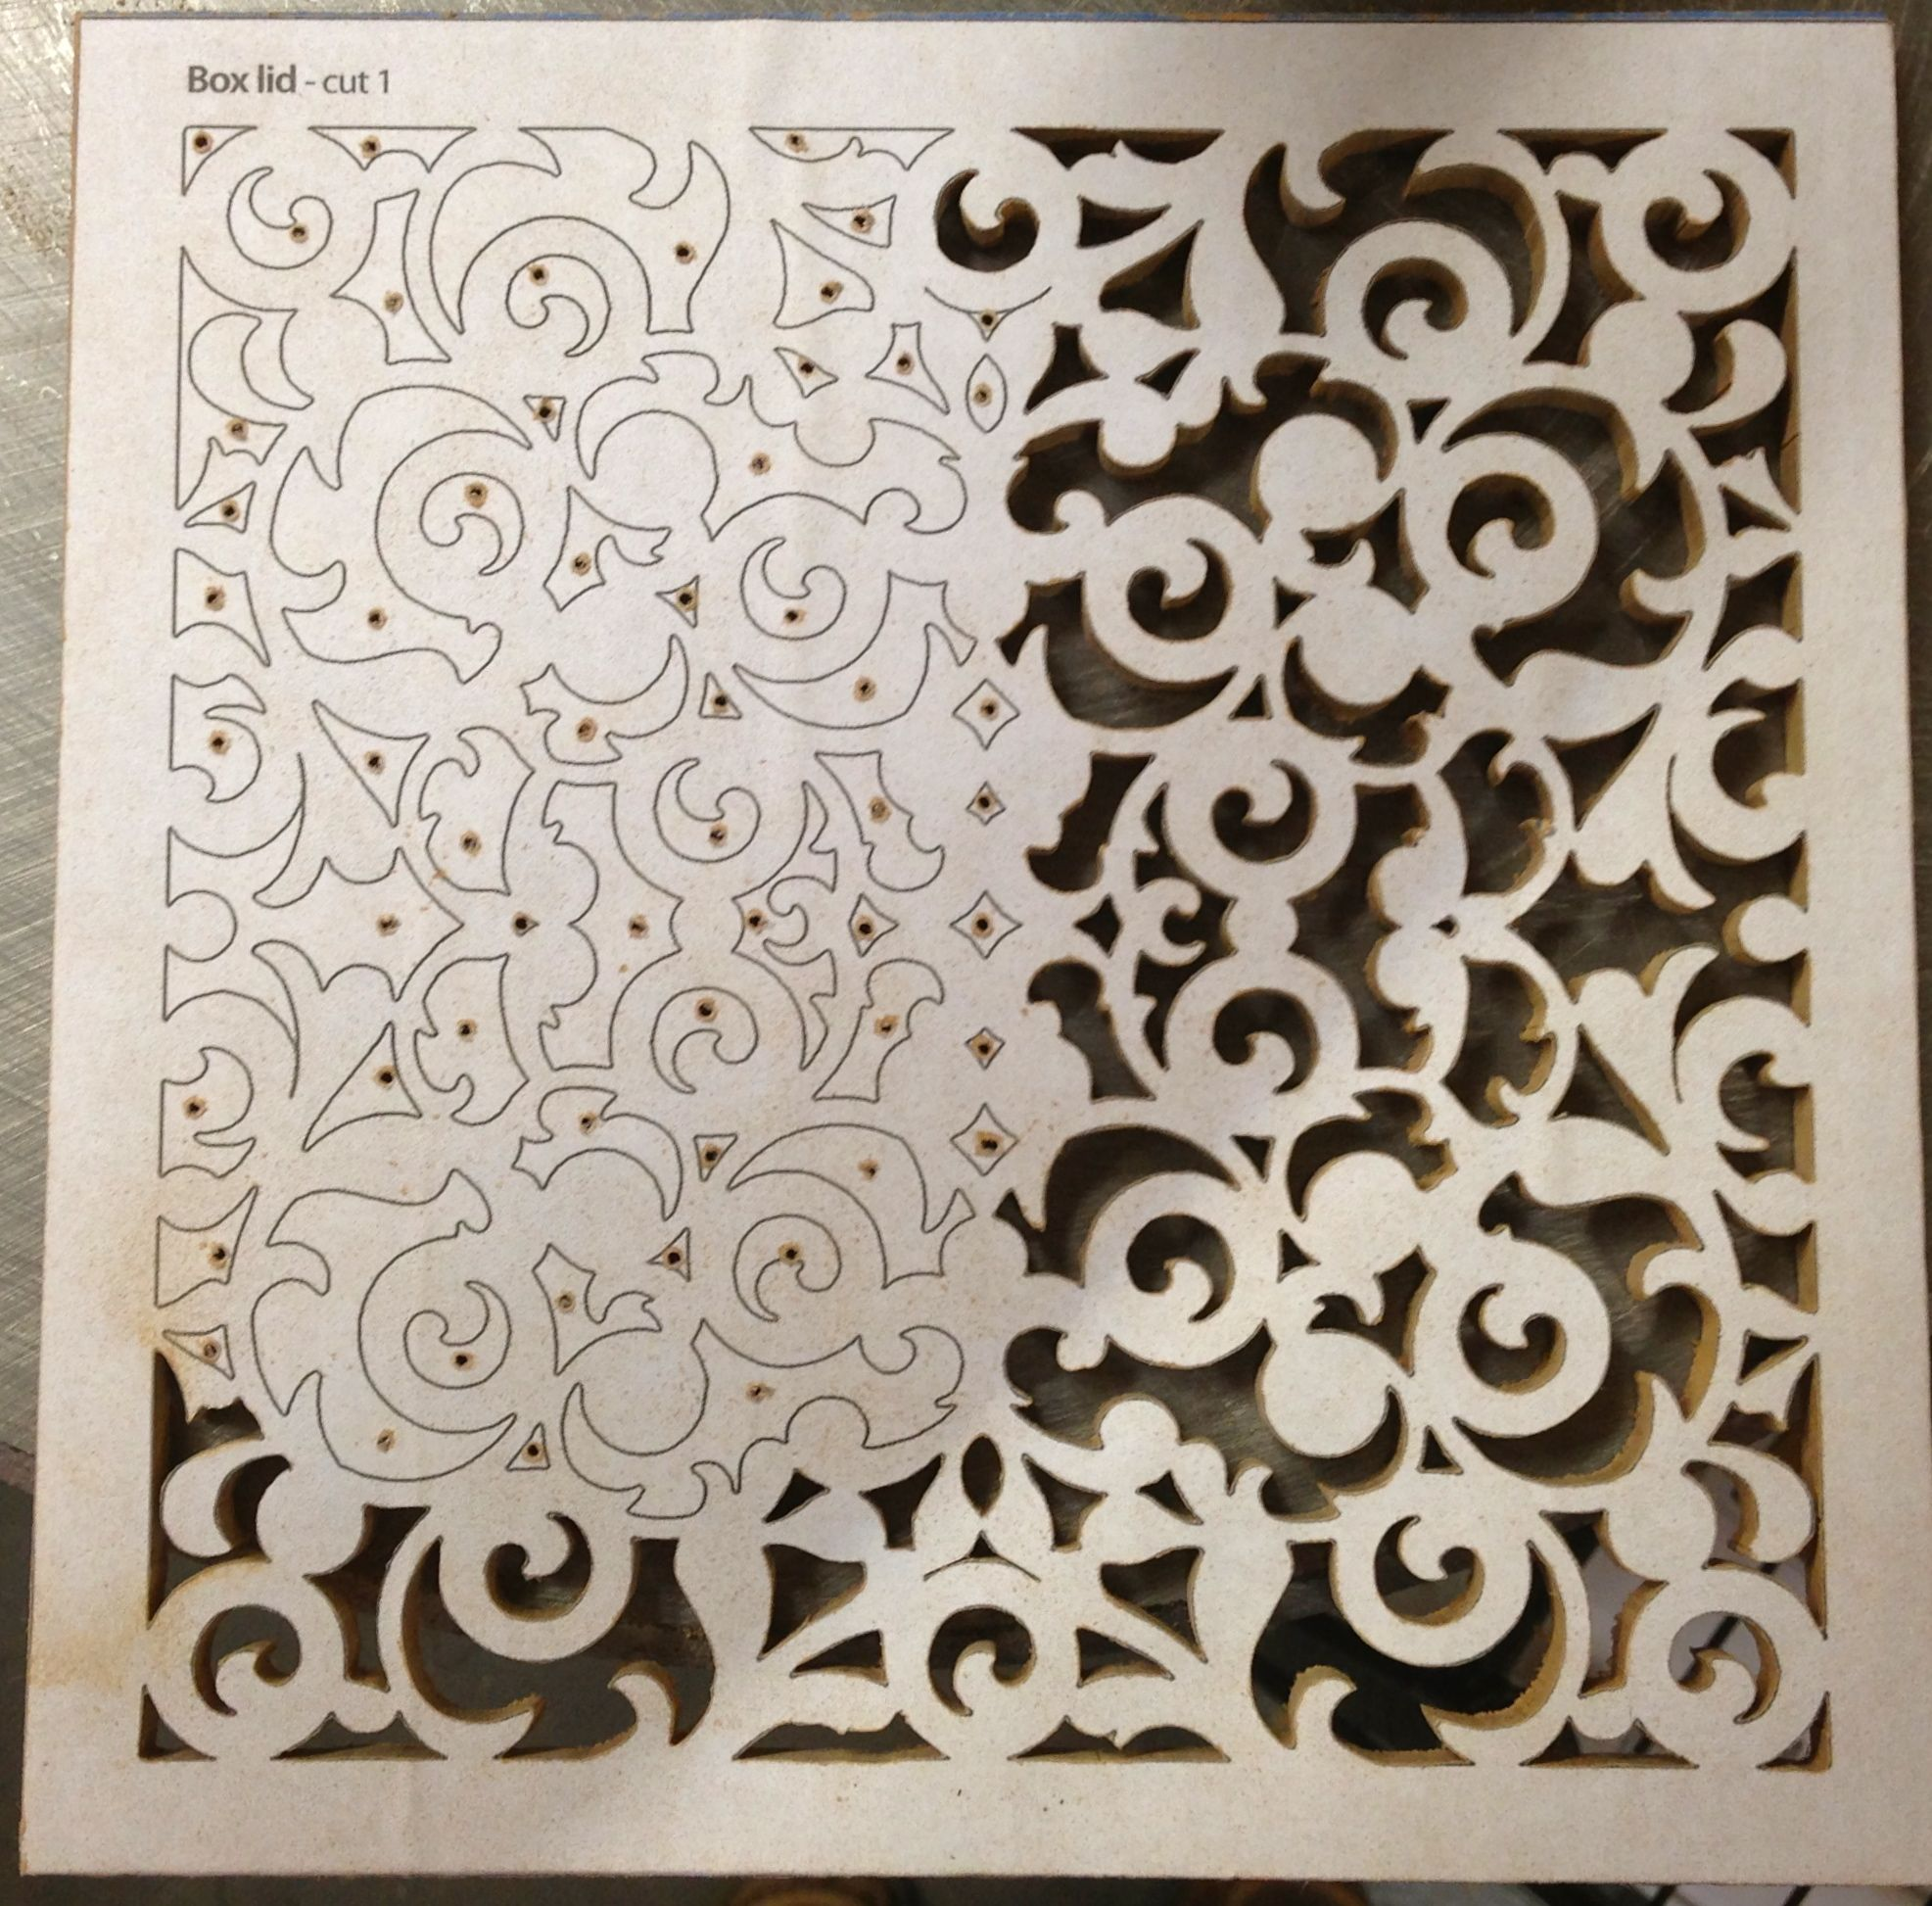 Just Pictures of the Fretwork | Andrew's View of the Week